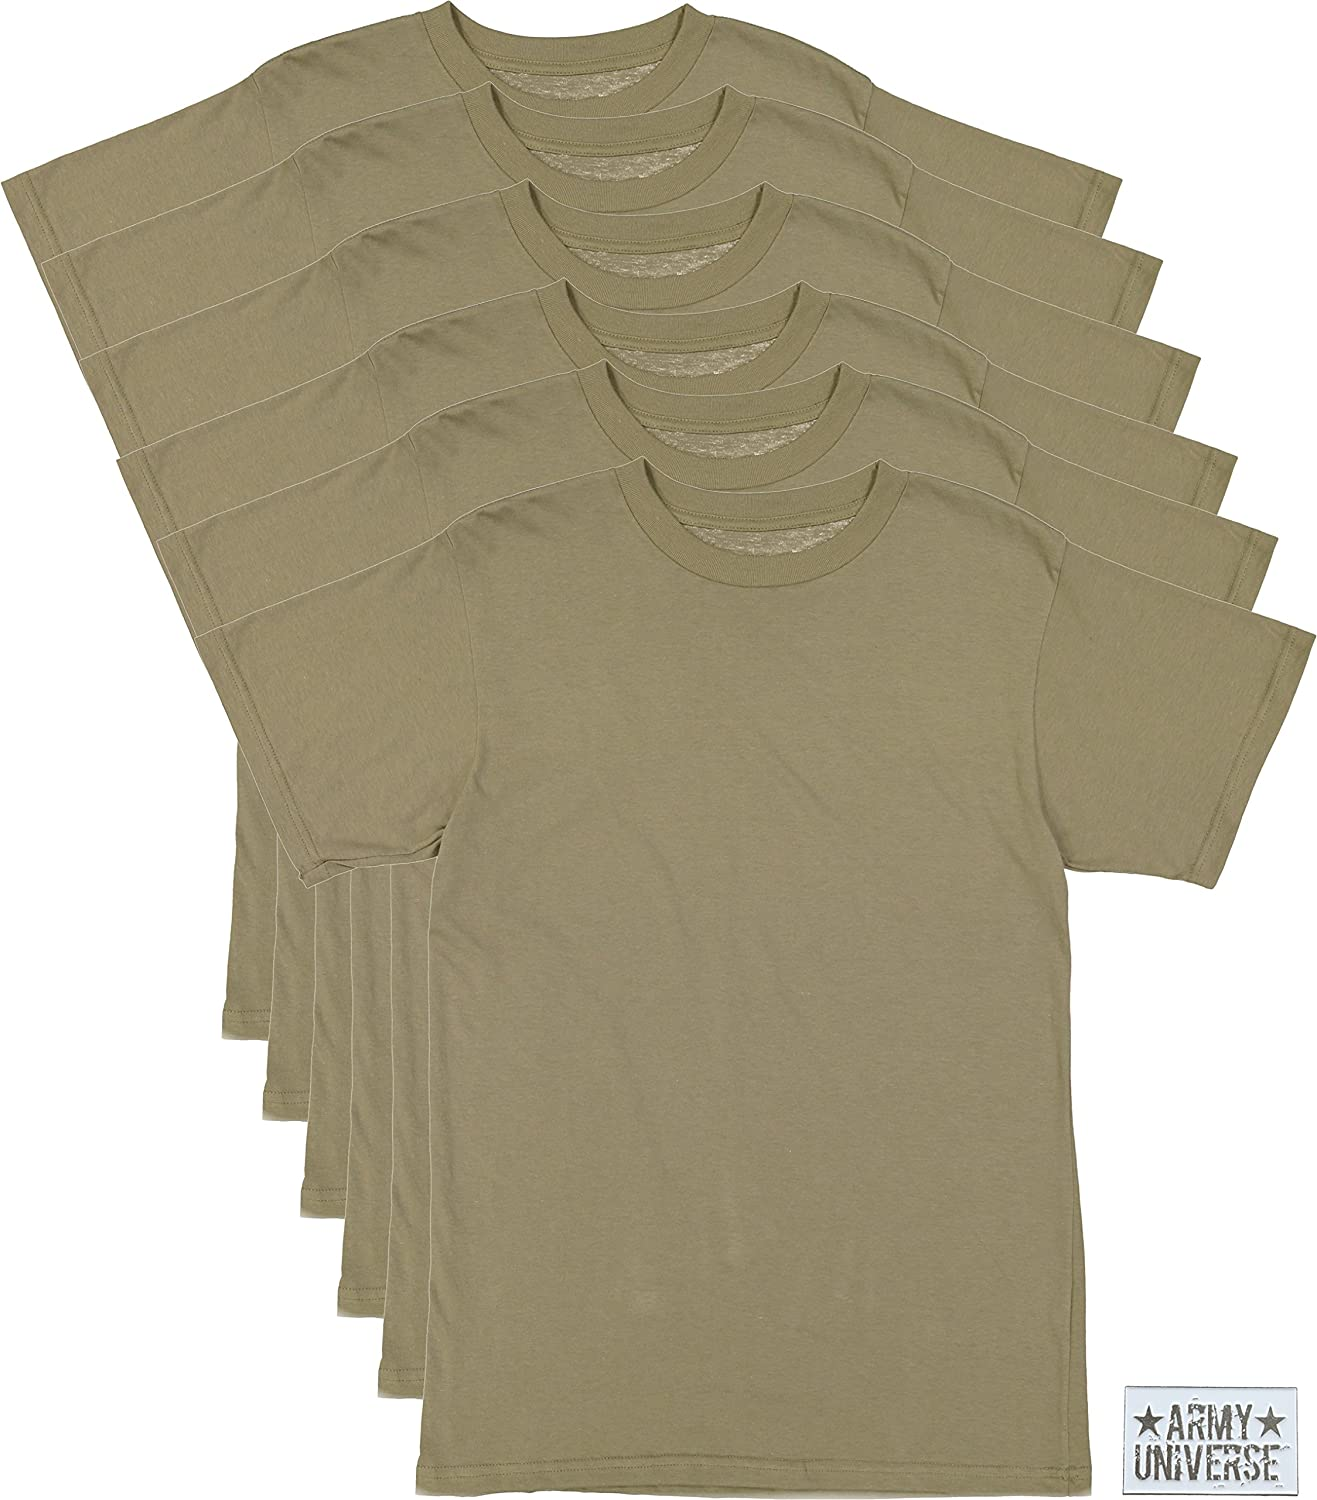 Amazon.com  6 Pack - AR 670-1 Army Compliant Coyote Brown Mens Military T- Shirt Poly Cotton Multicam OCP Scorpion Uniform Approved  Clothing d50bb125a86